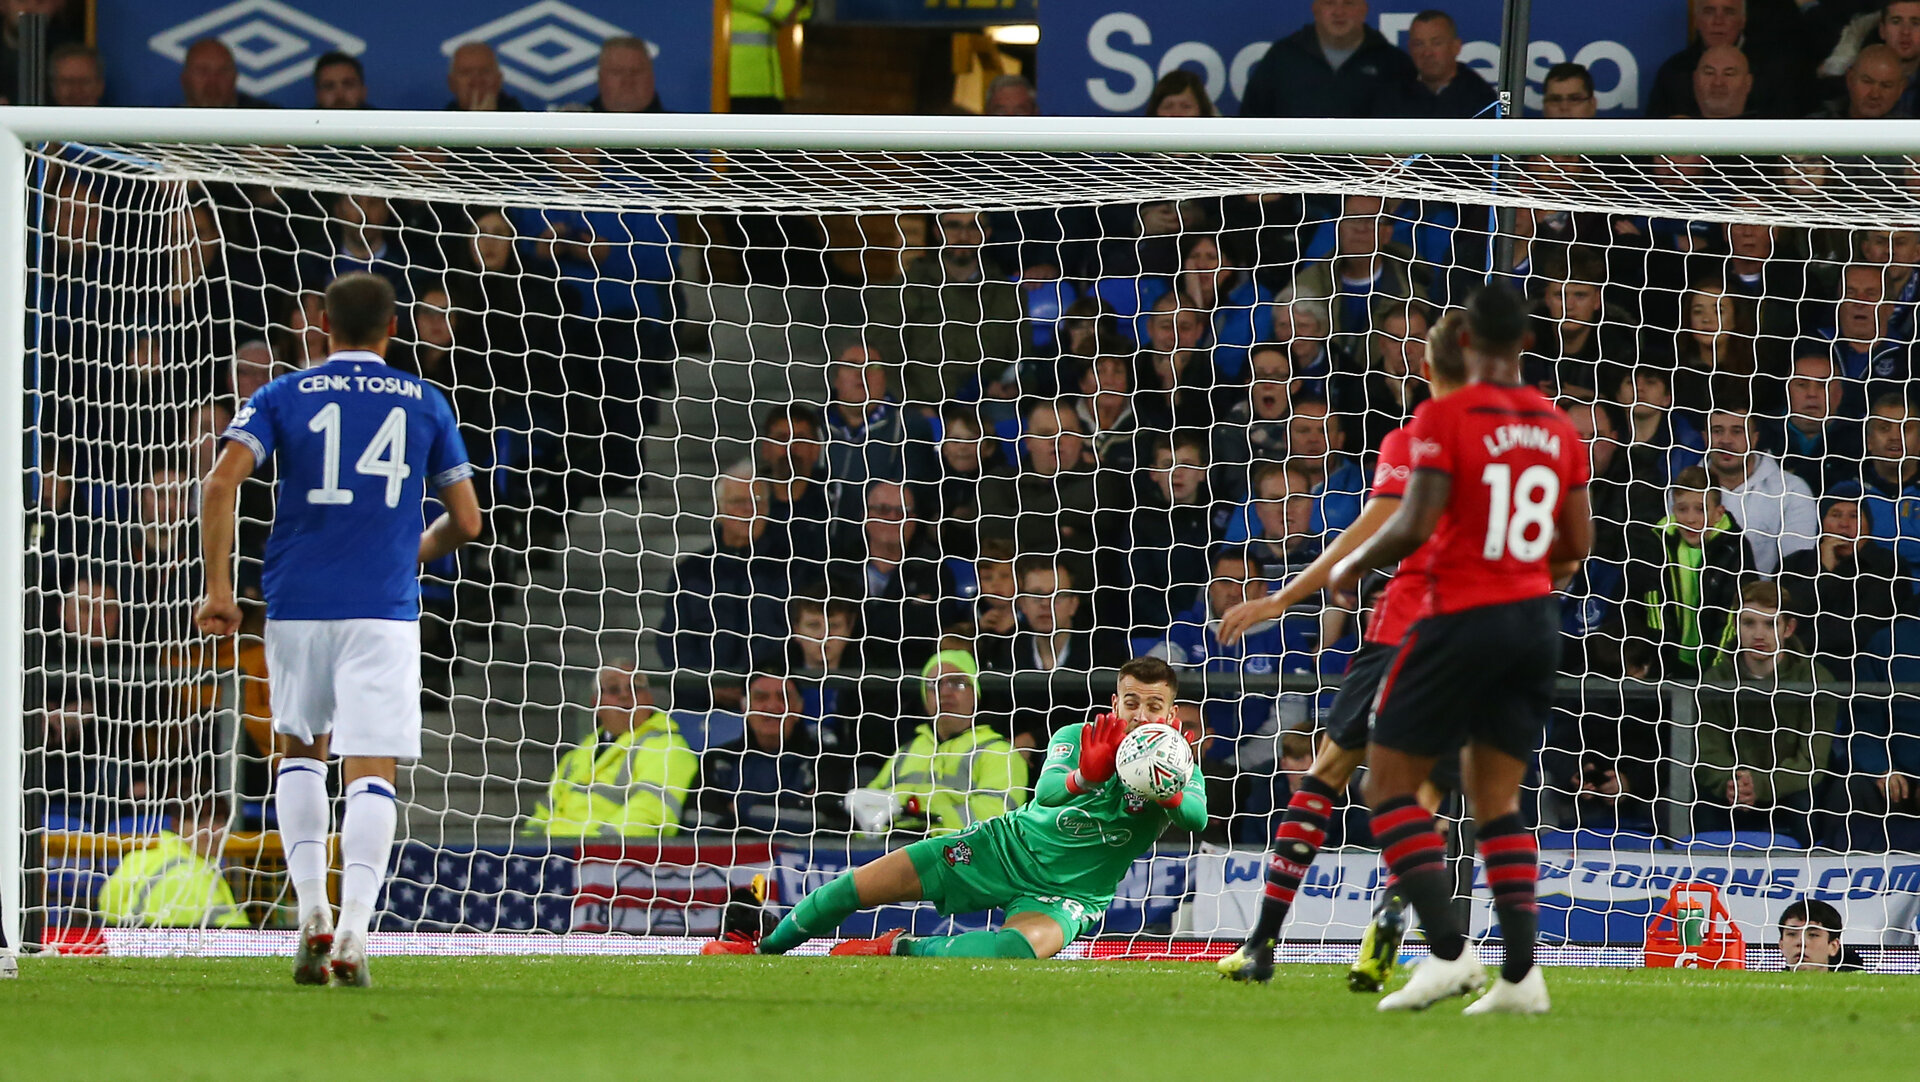 LIVERPOOL, ENGLAND - OCTOBER 02: Angus Gunn of Southampton saves during the Carabao Cup Third Round match between Everton and Southampton at Goodison Park on October 2nd, 2018 in Liverpool, England. (Photo by Matt Watson/Southampton FC via Getty Images)